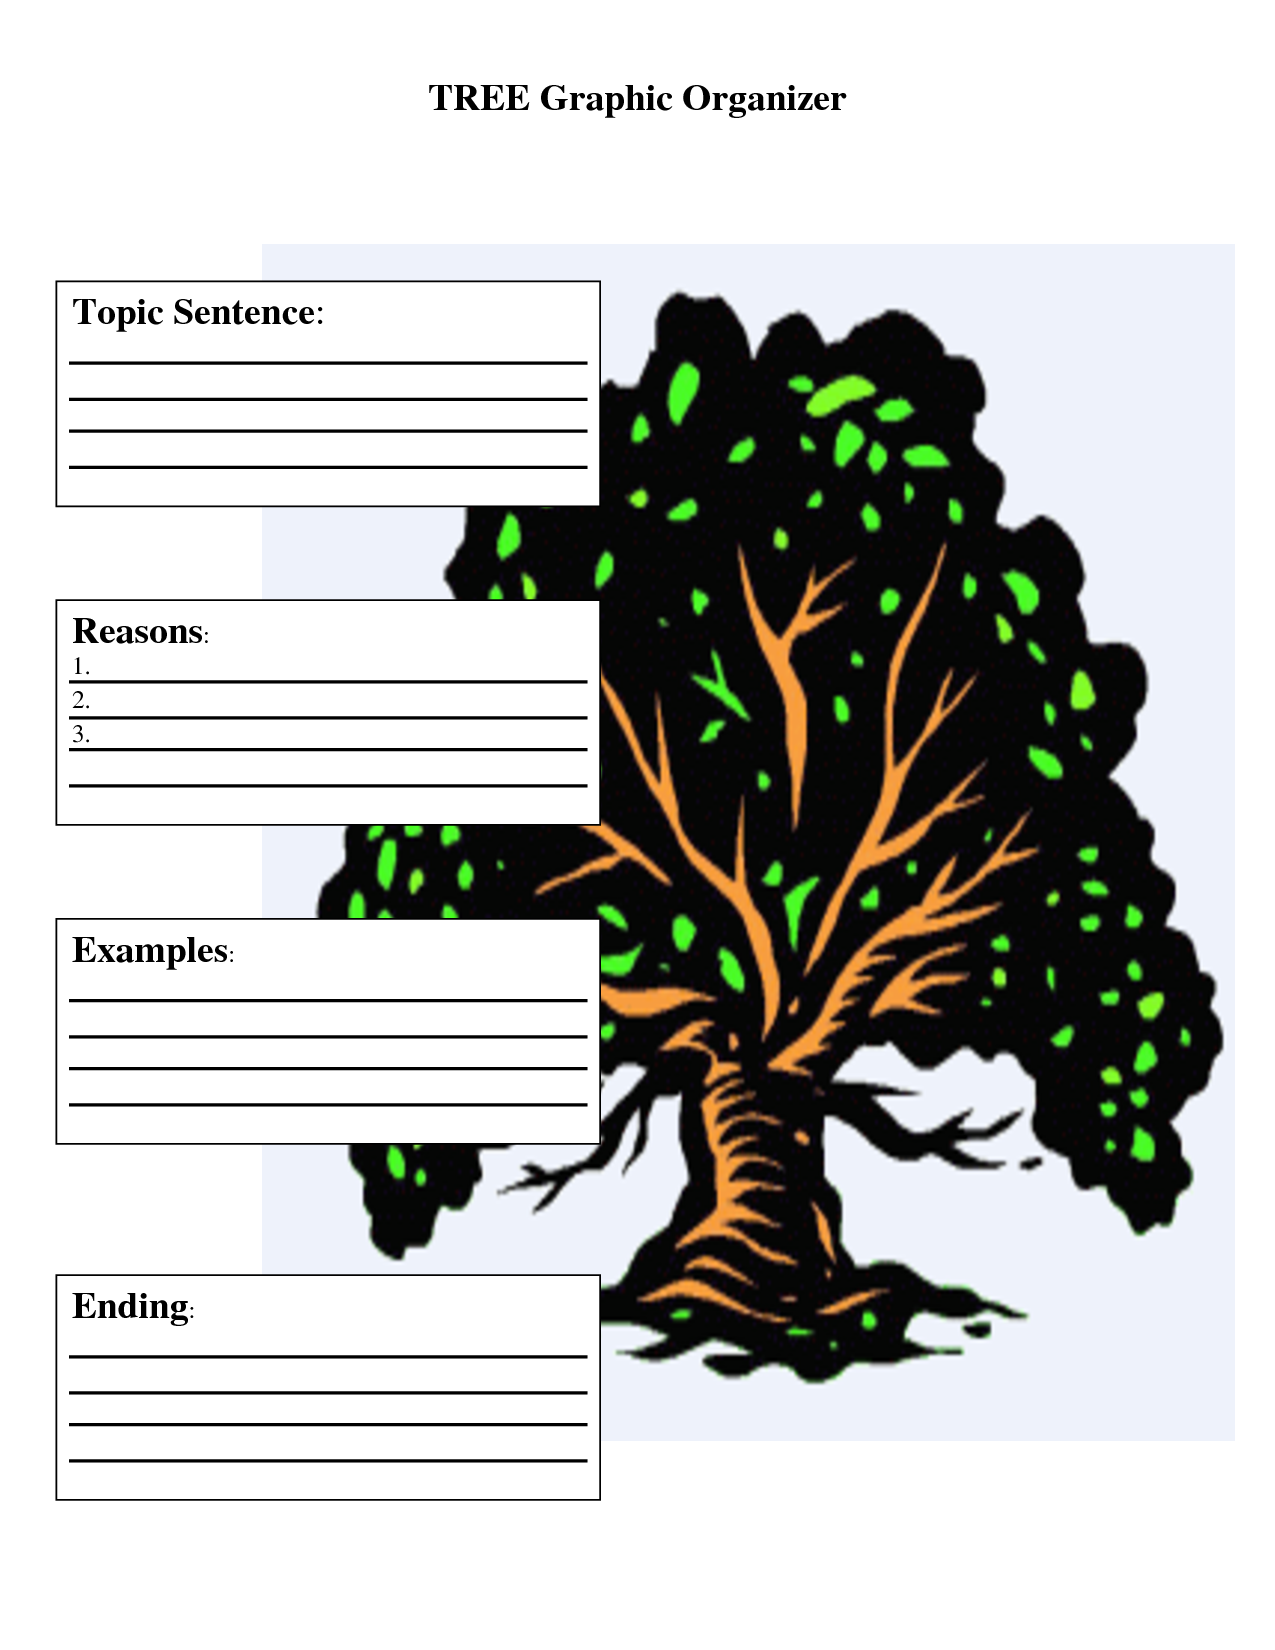 13 Tree Graphic Organizer Template Images Idea Tree